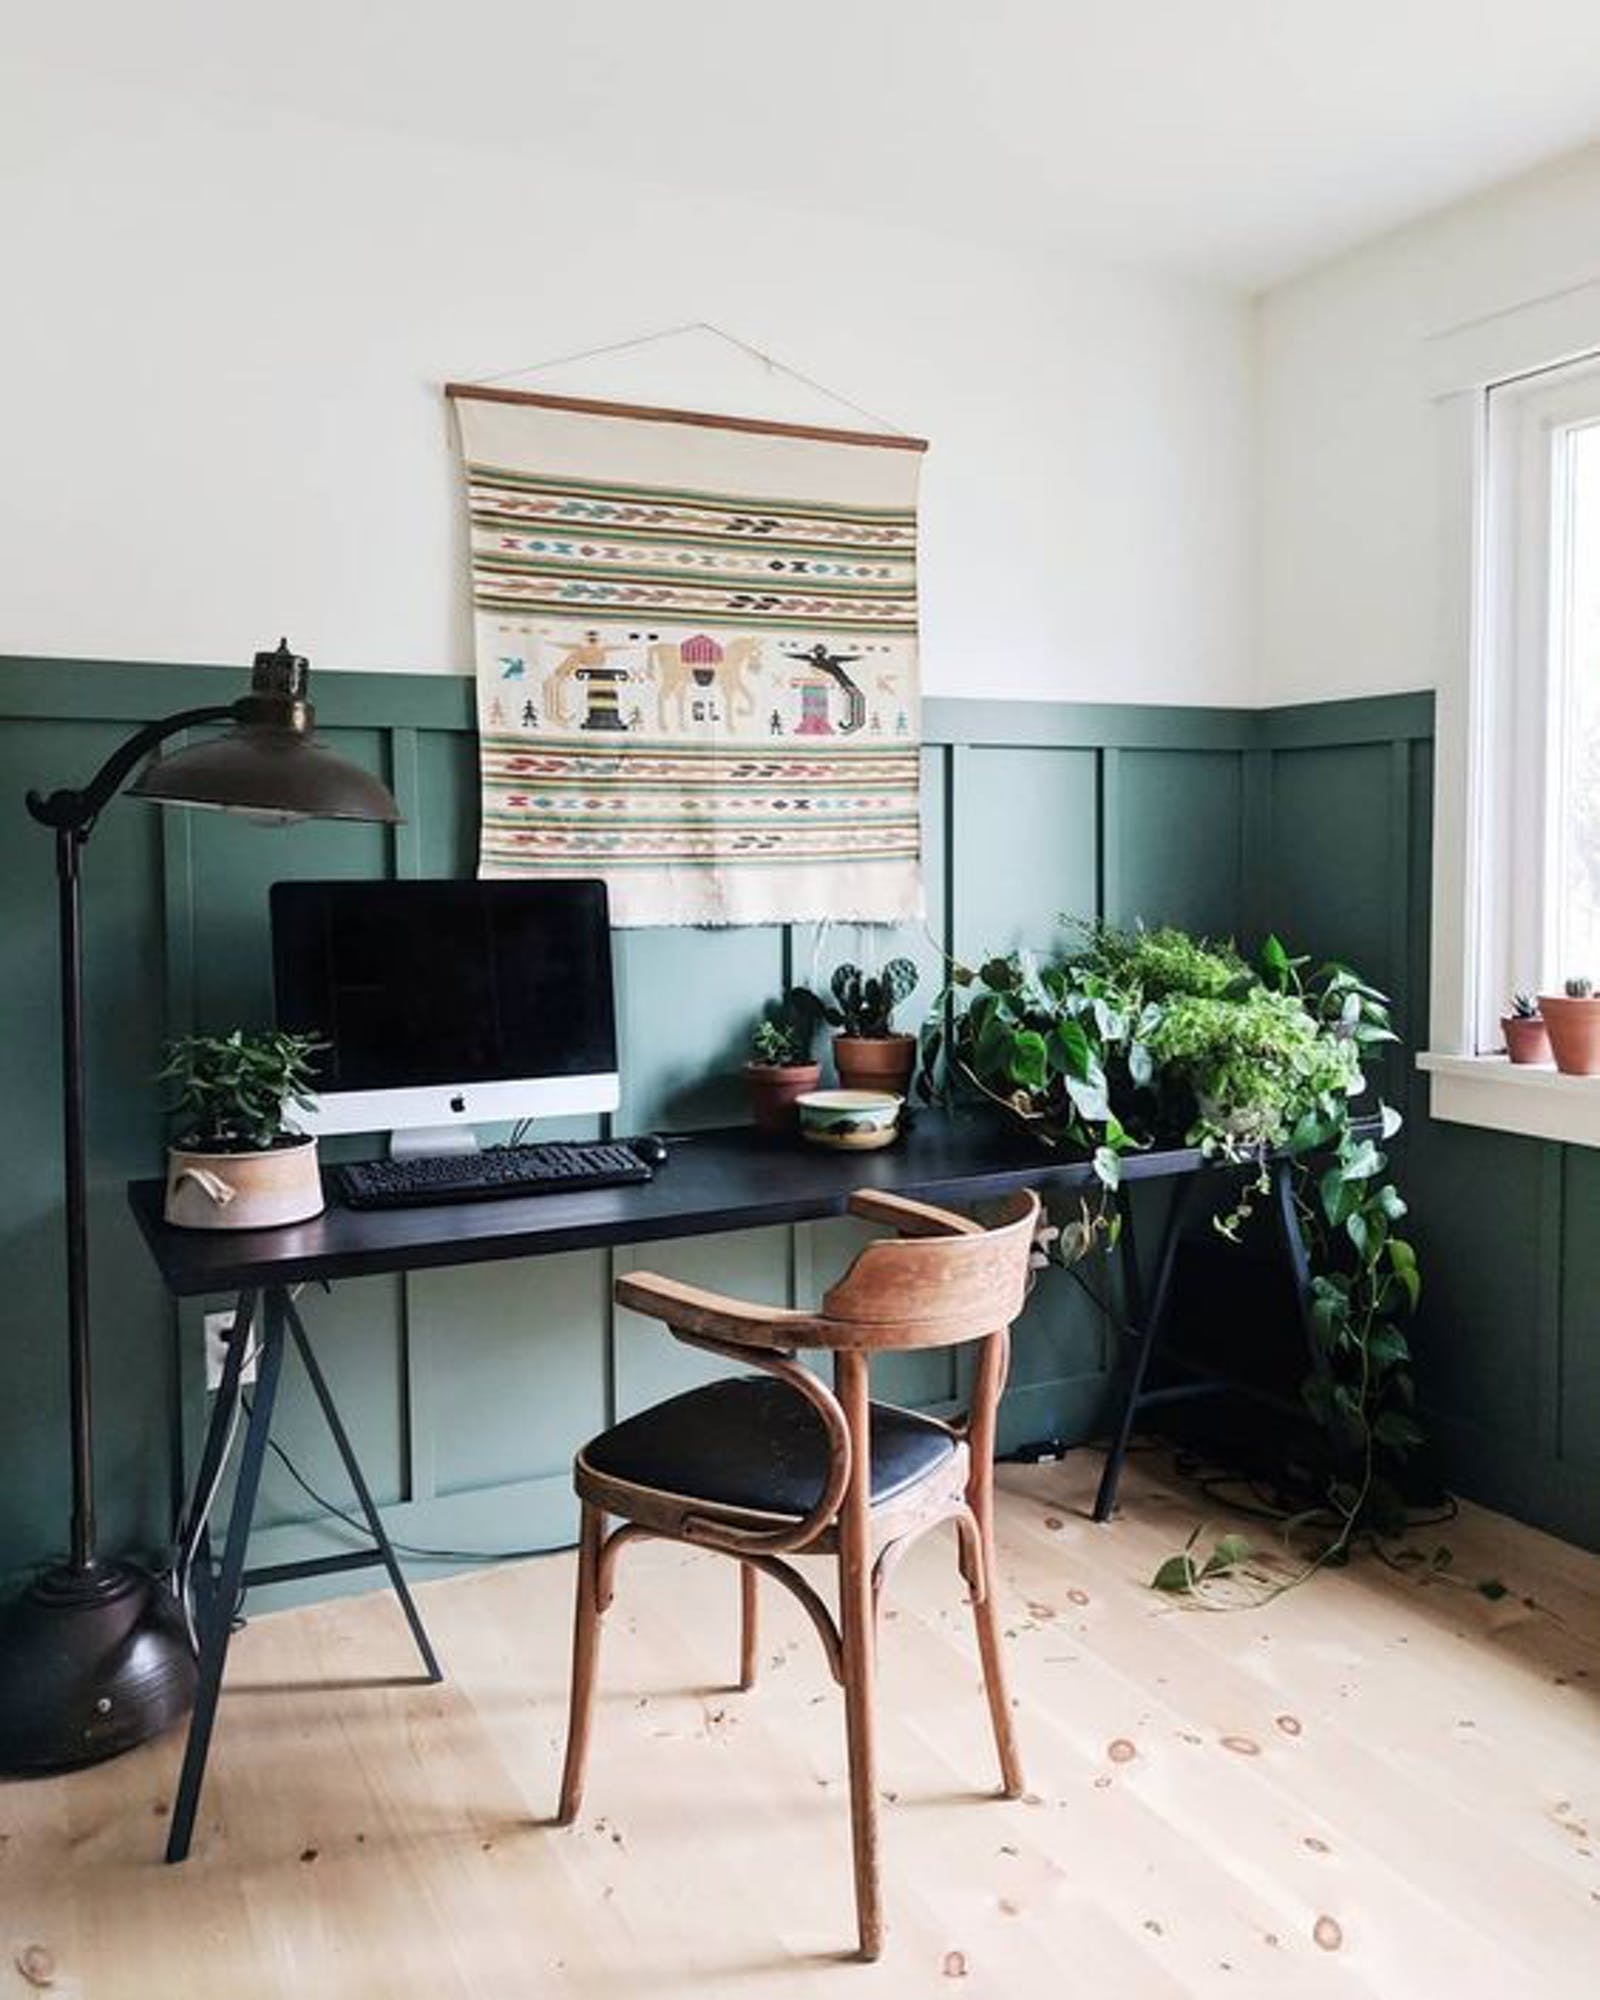 Home office area with a two-tone wall painted in white and green, wooden chair and green plants